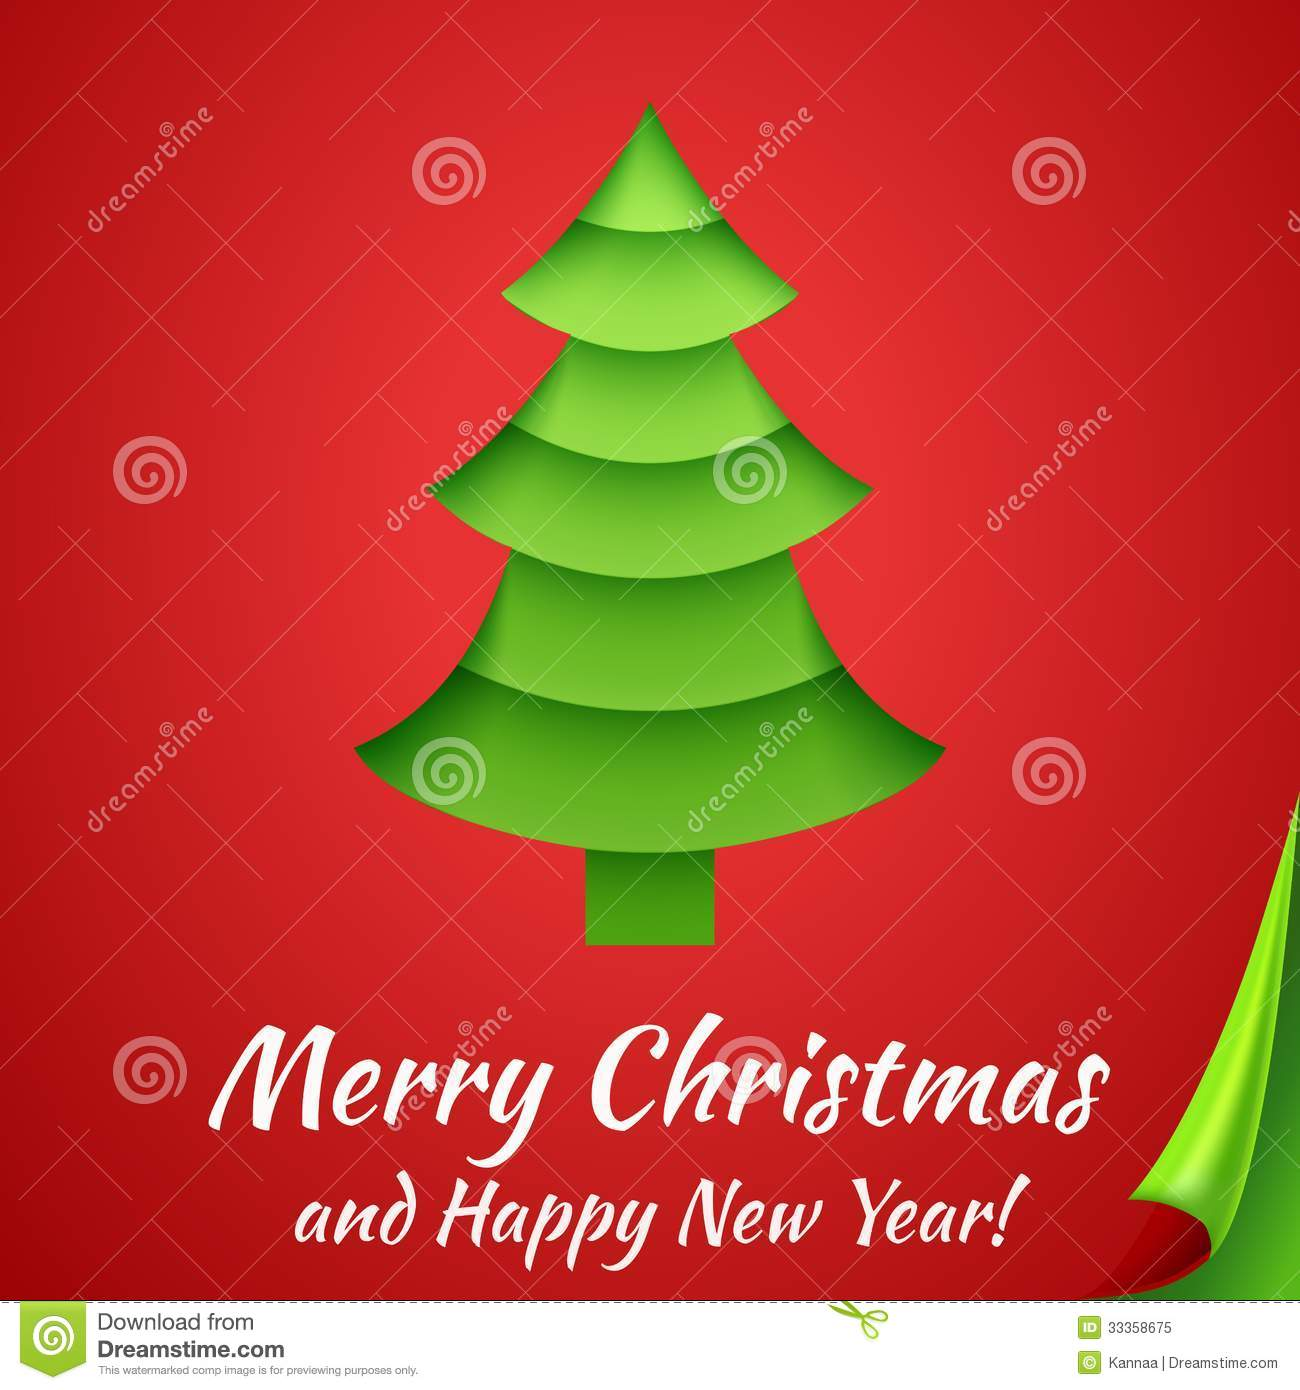 Merry Christmas Greeting Card With Tree. Vector Stock Vector ...